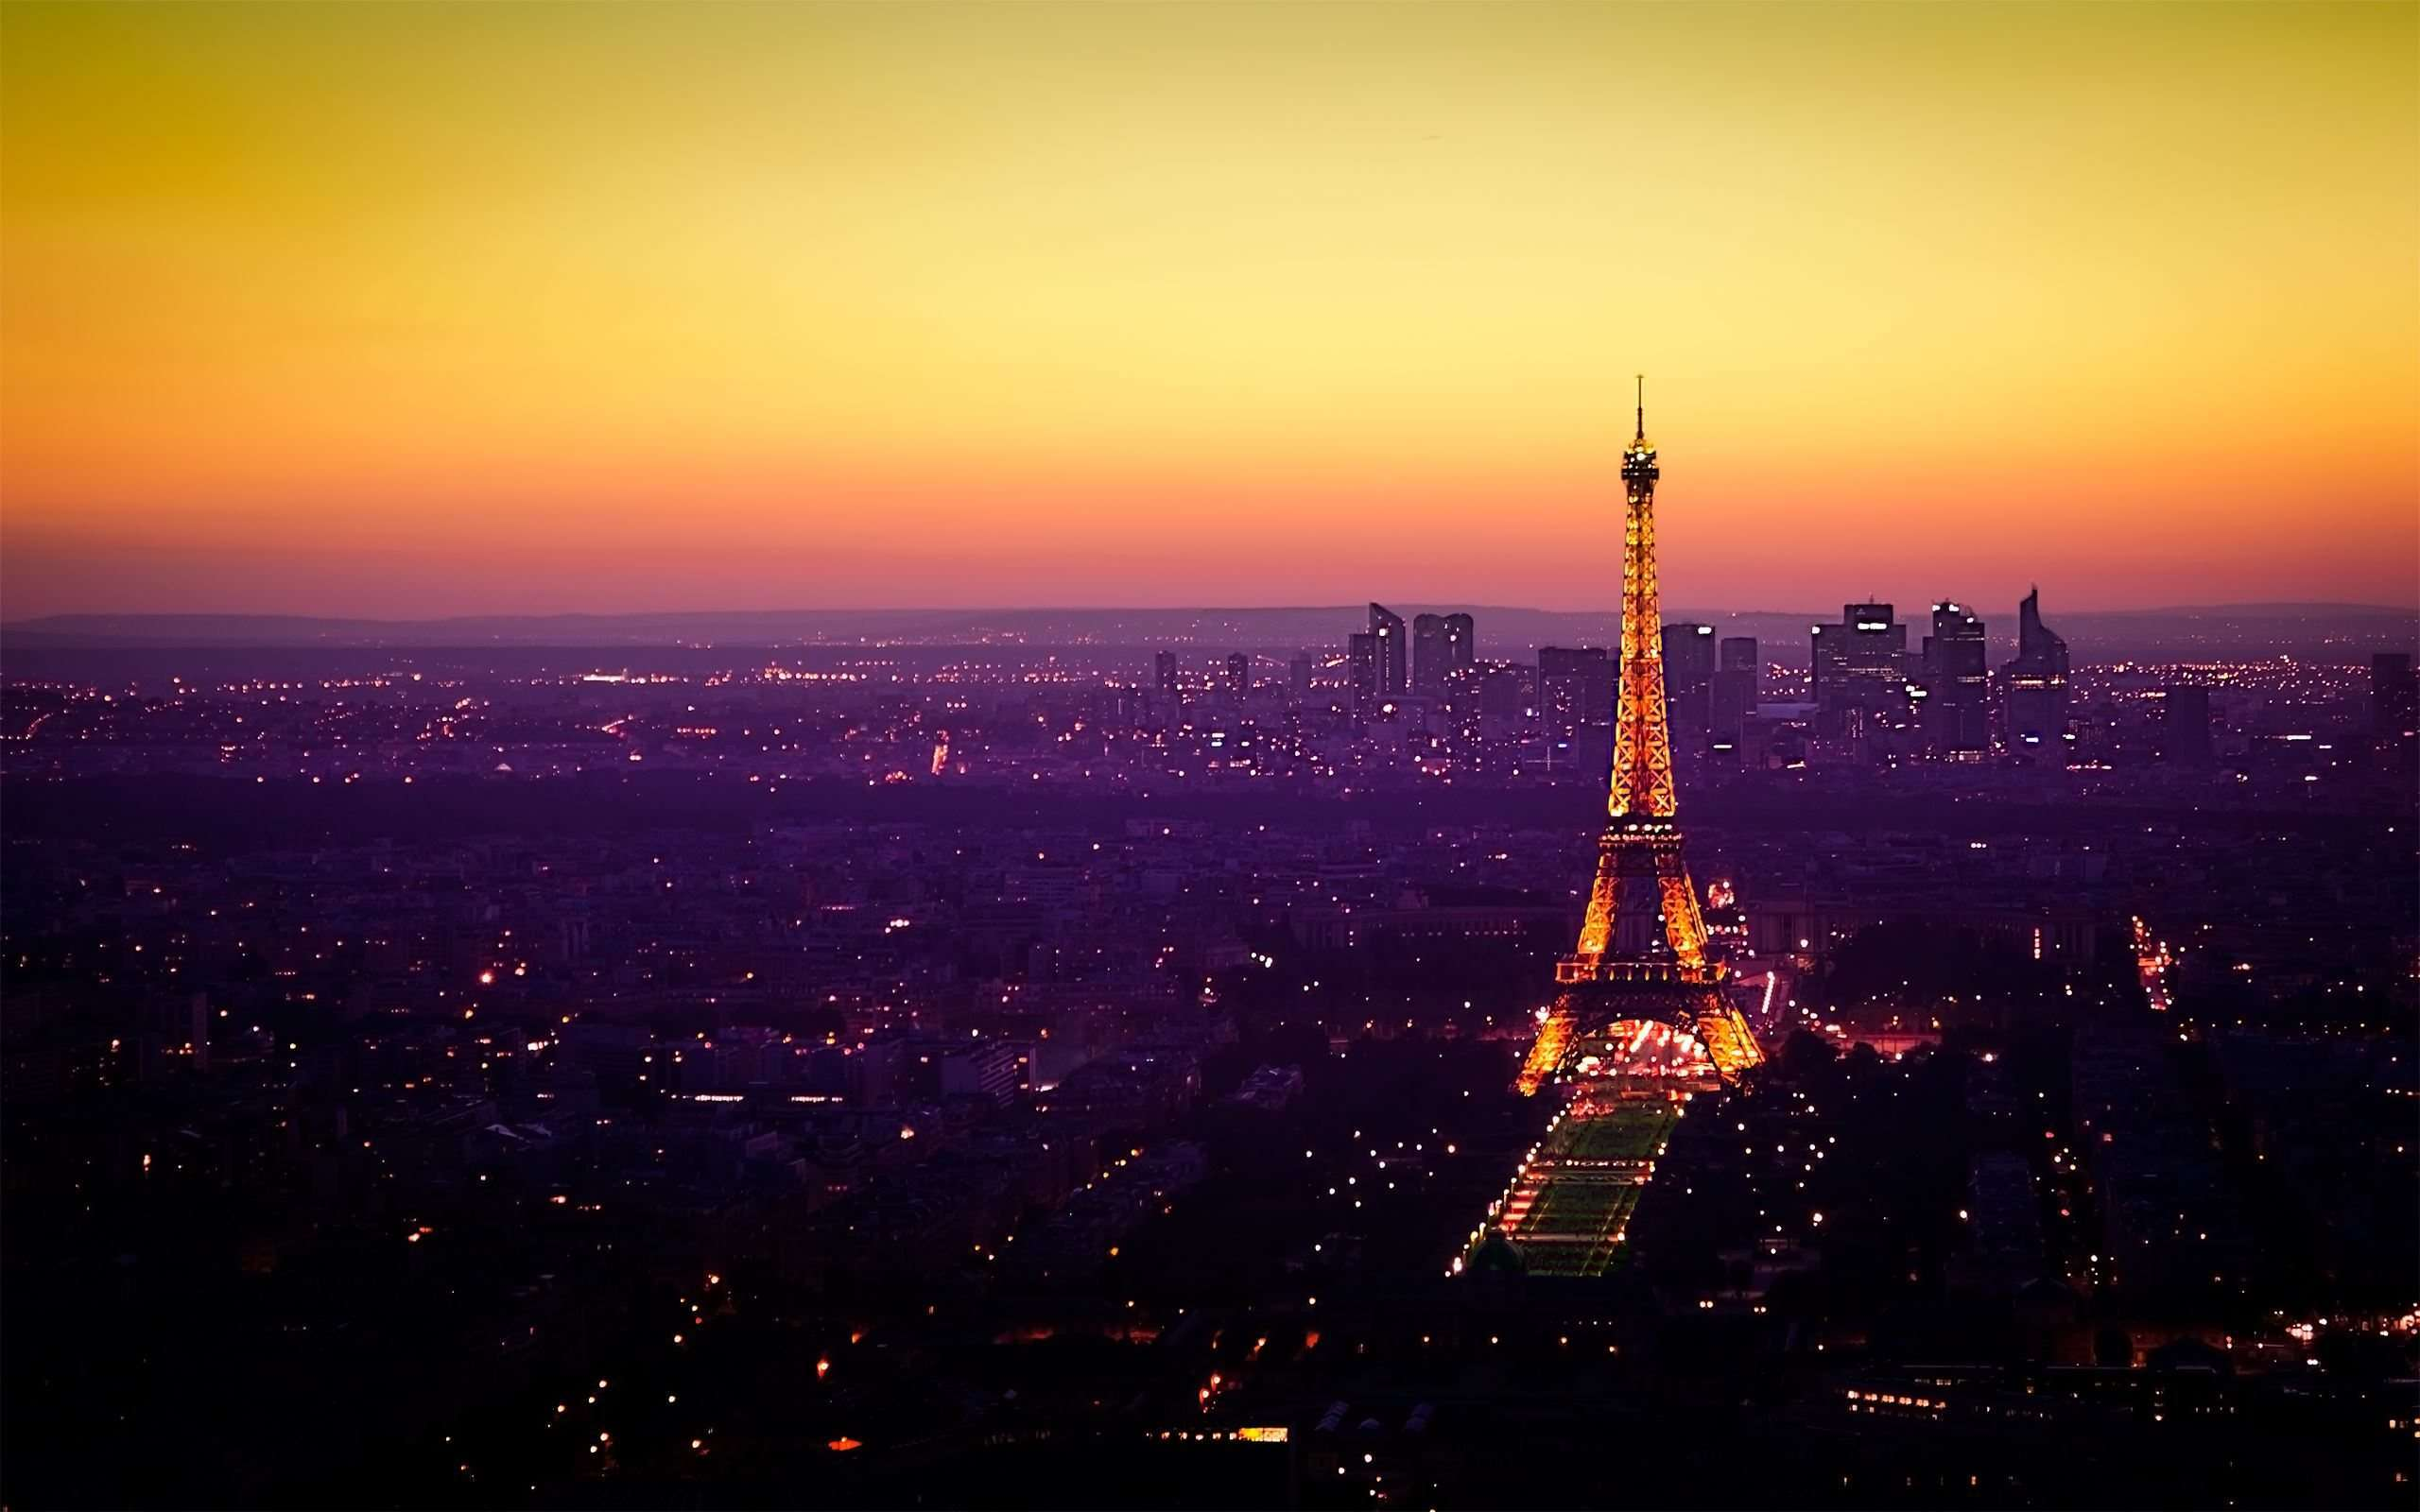 Landscape Sunset In Paris Wallpaper